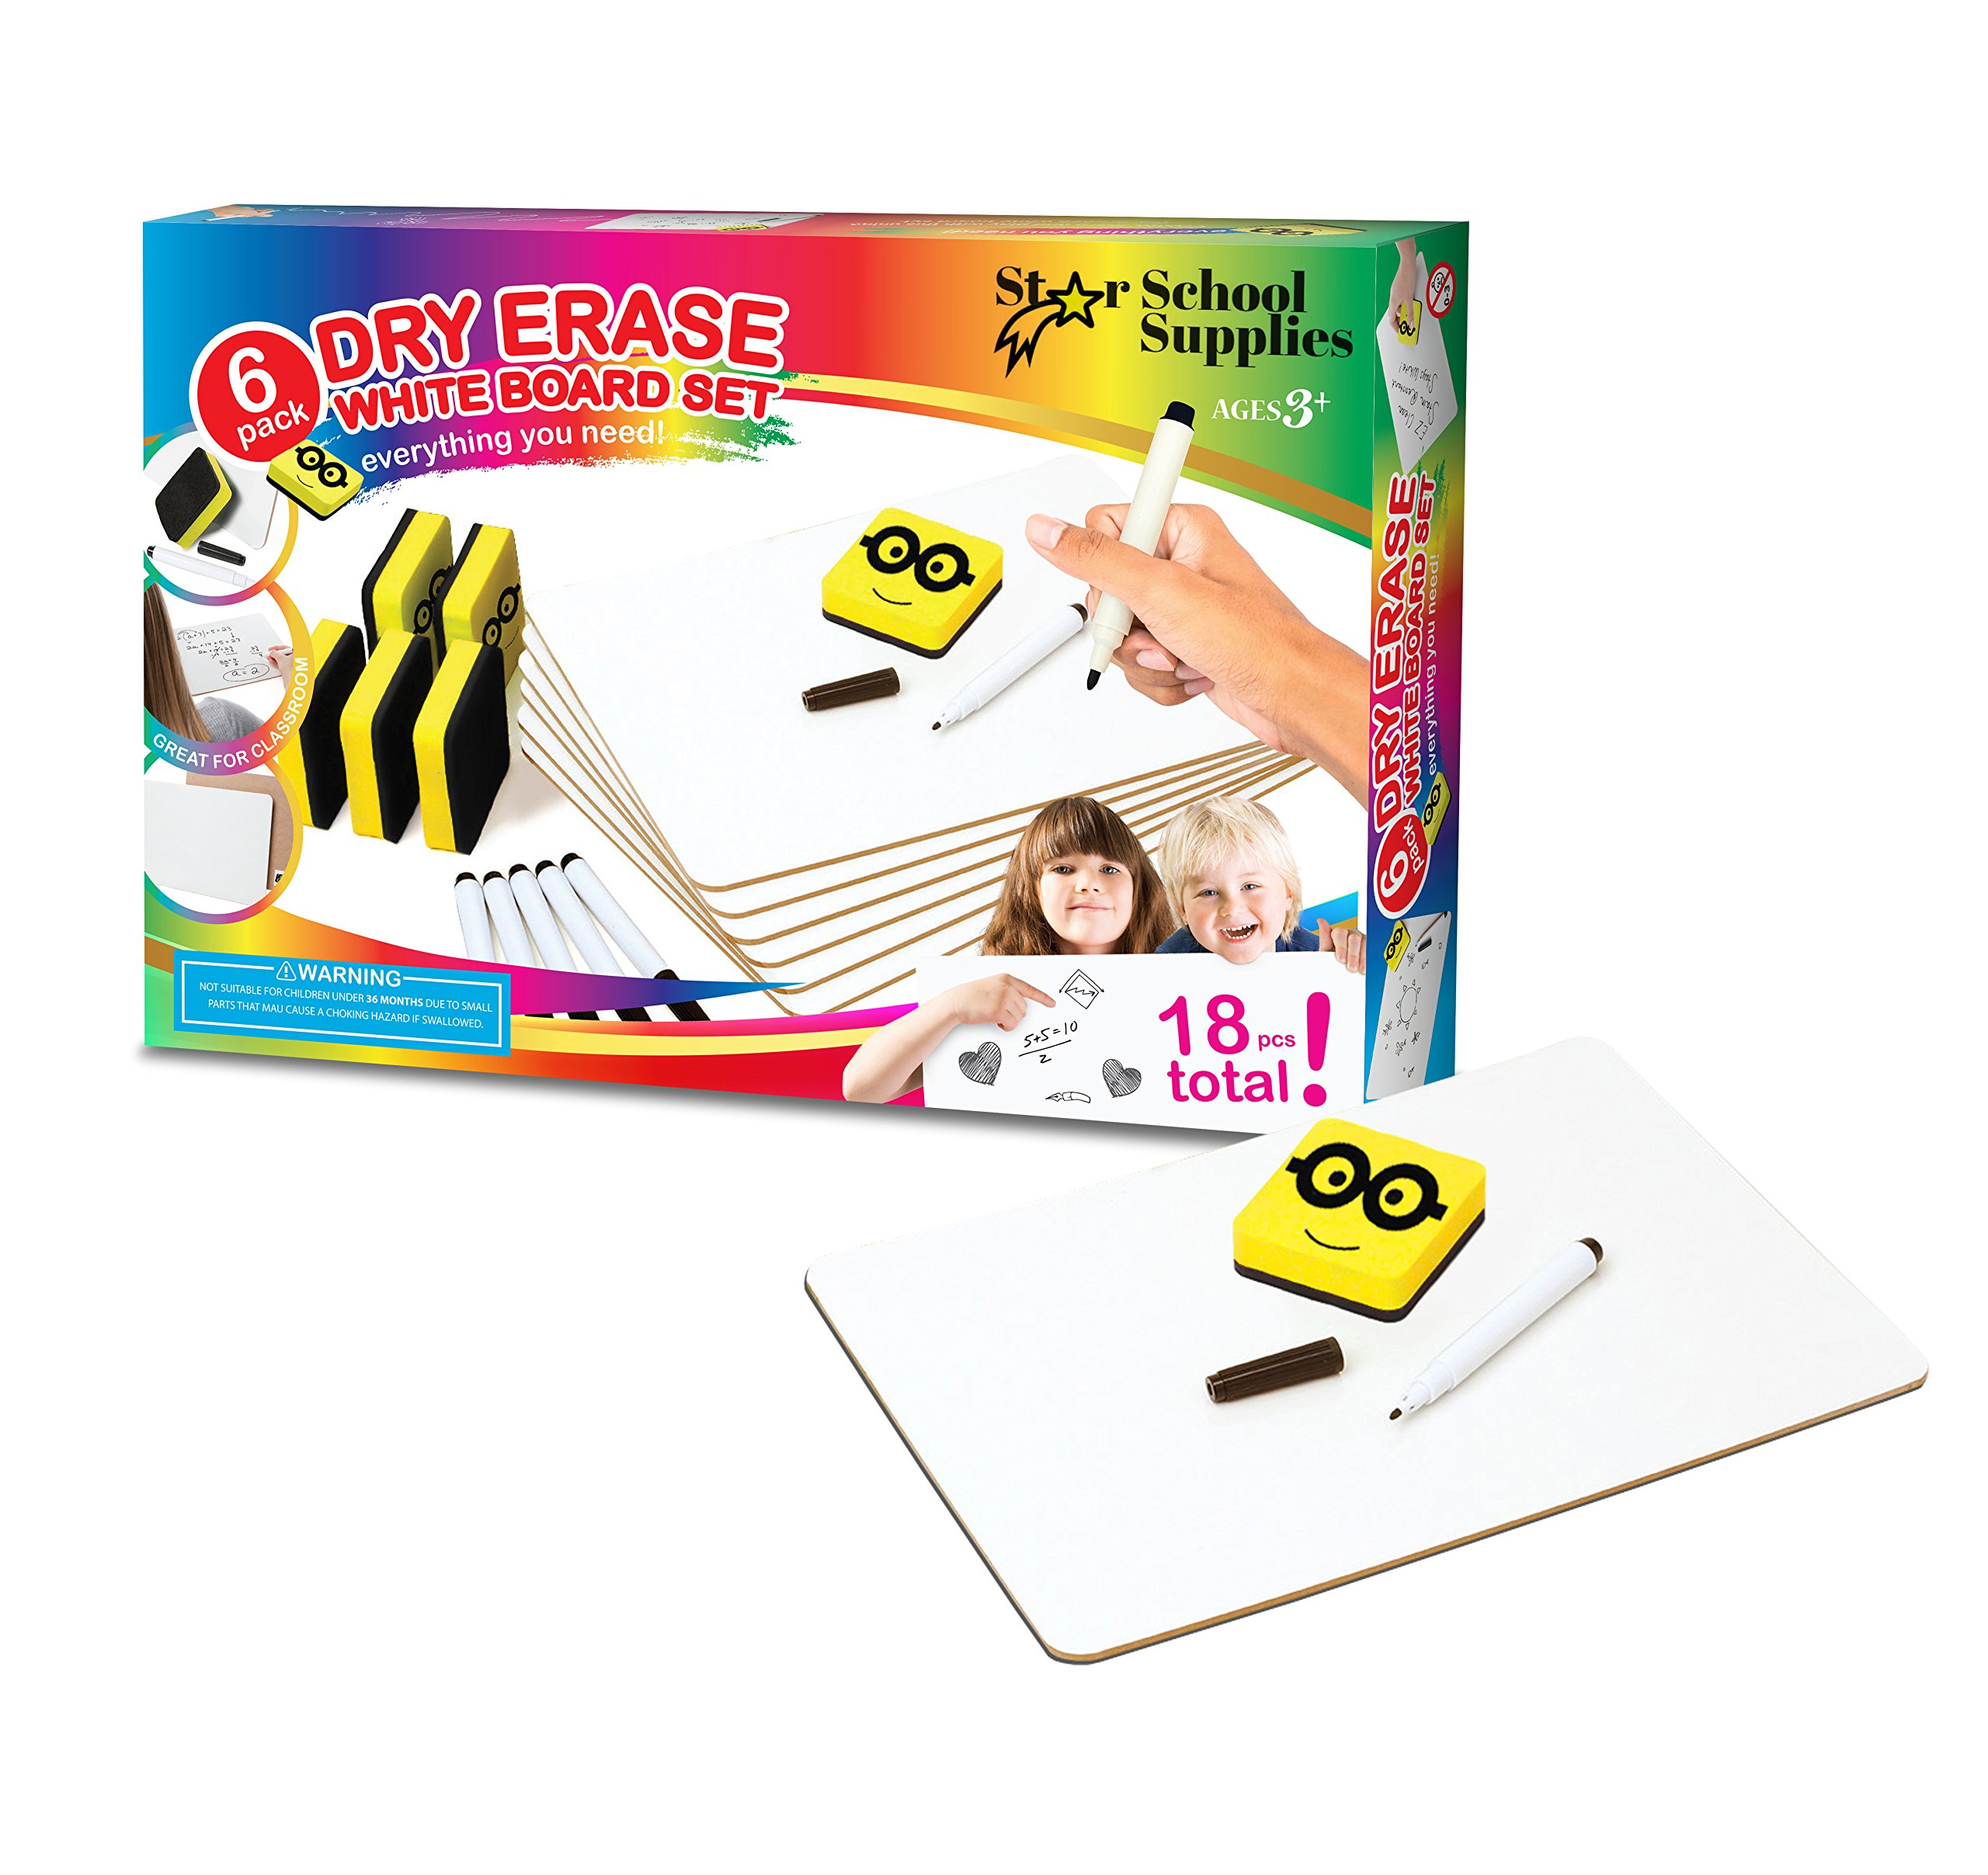 Dry Erase Boards | 6 Whiteboard Class Set | With Dry Erase Lapboard Markers , Erasers | Perfect board For Kids, Students, Teachers in The Classroom, Home or Office